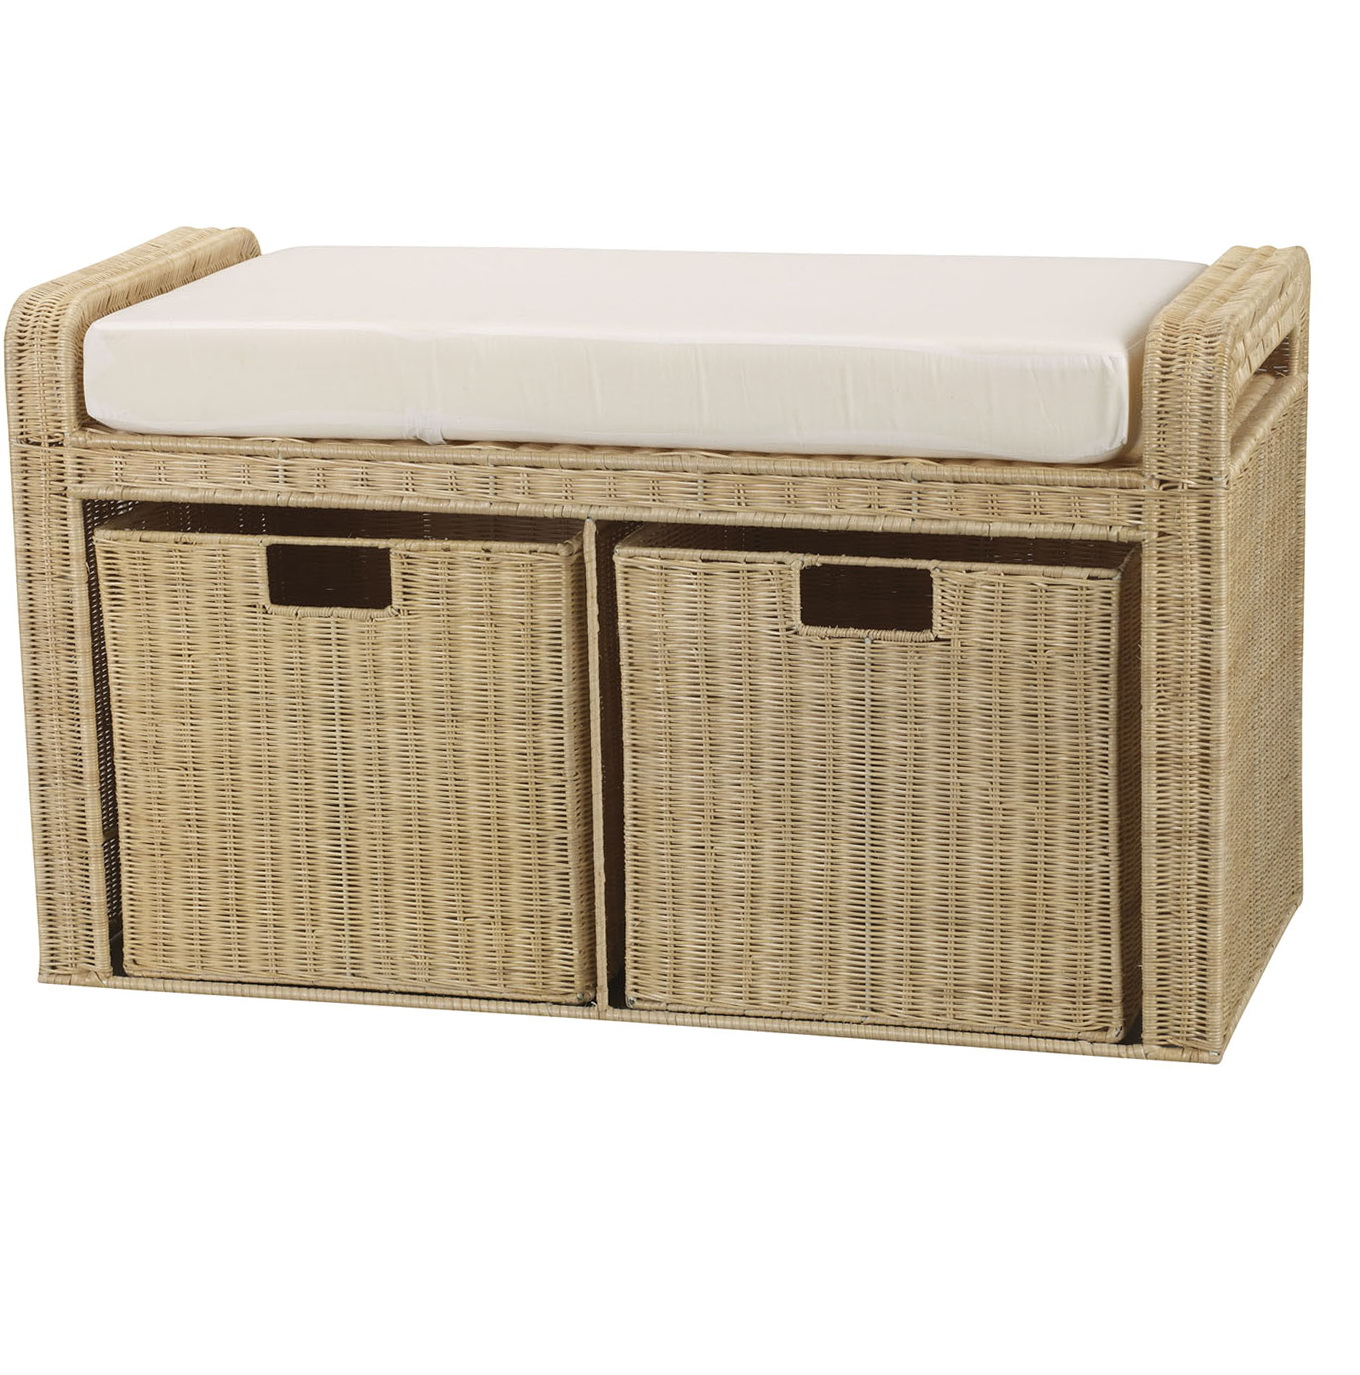 Wicker Storage Bench Seat Home Design Ideas